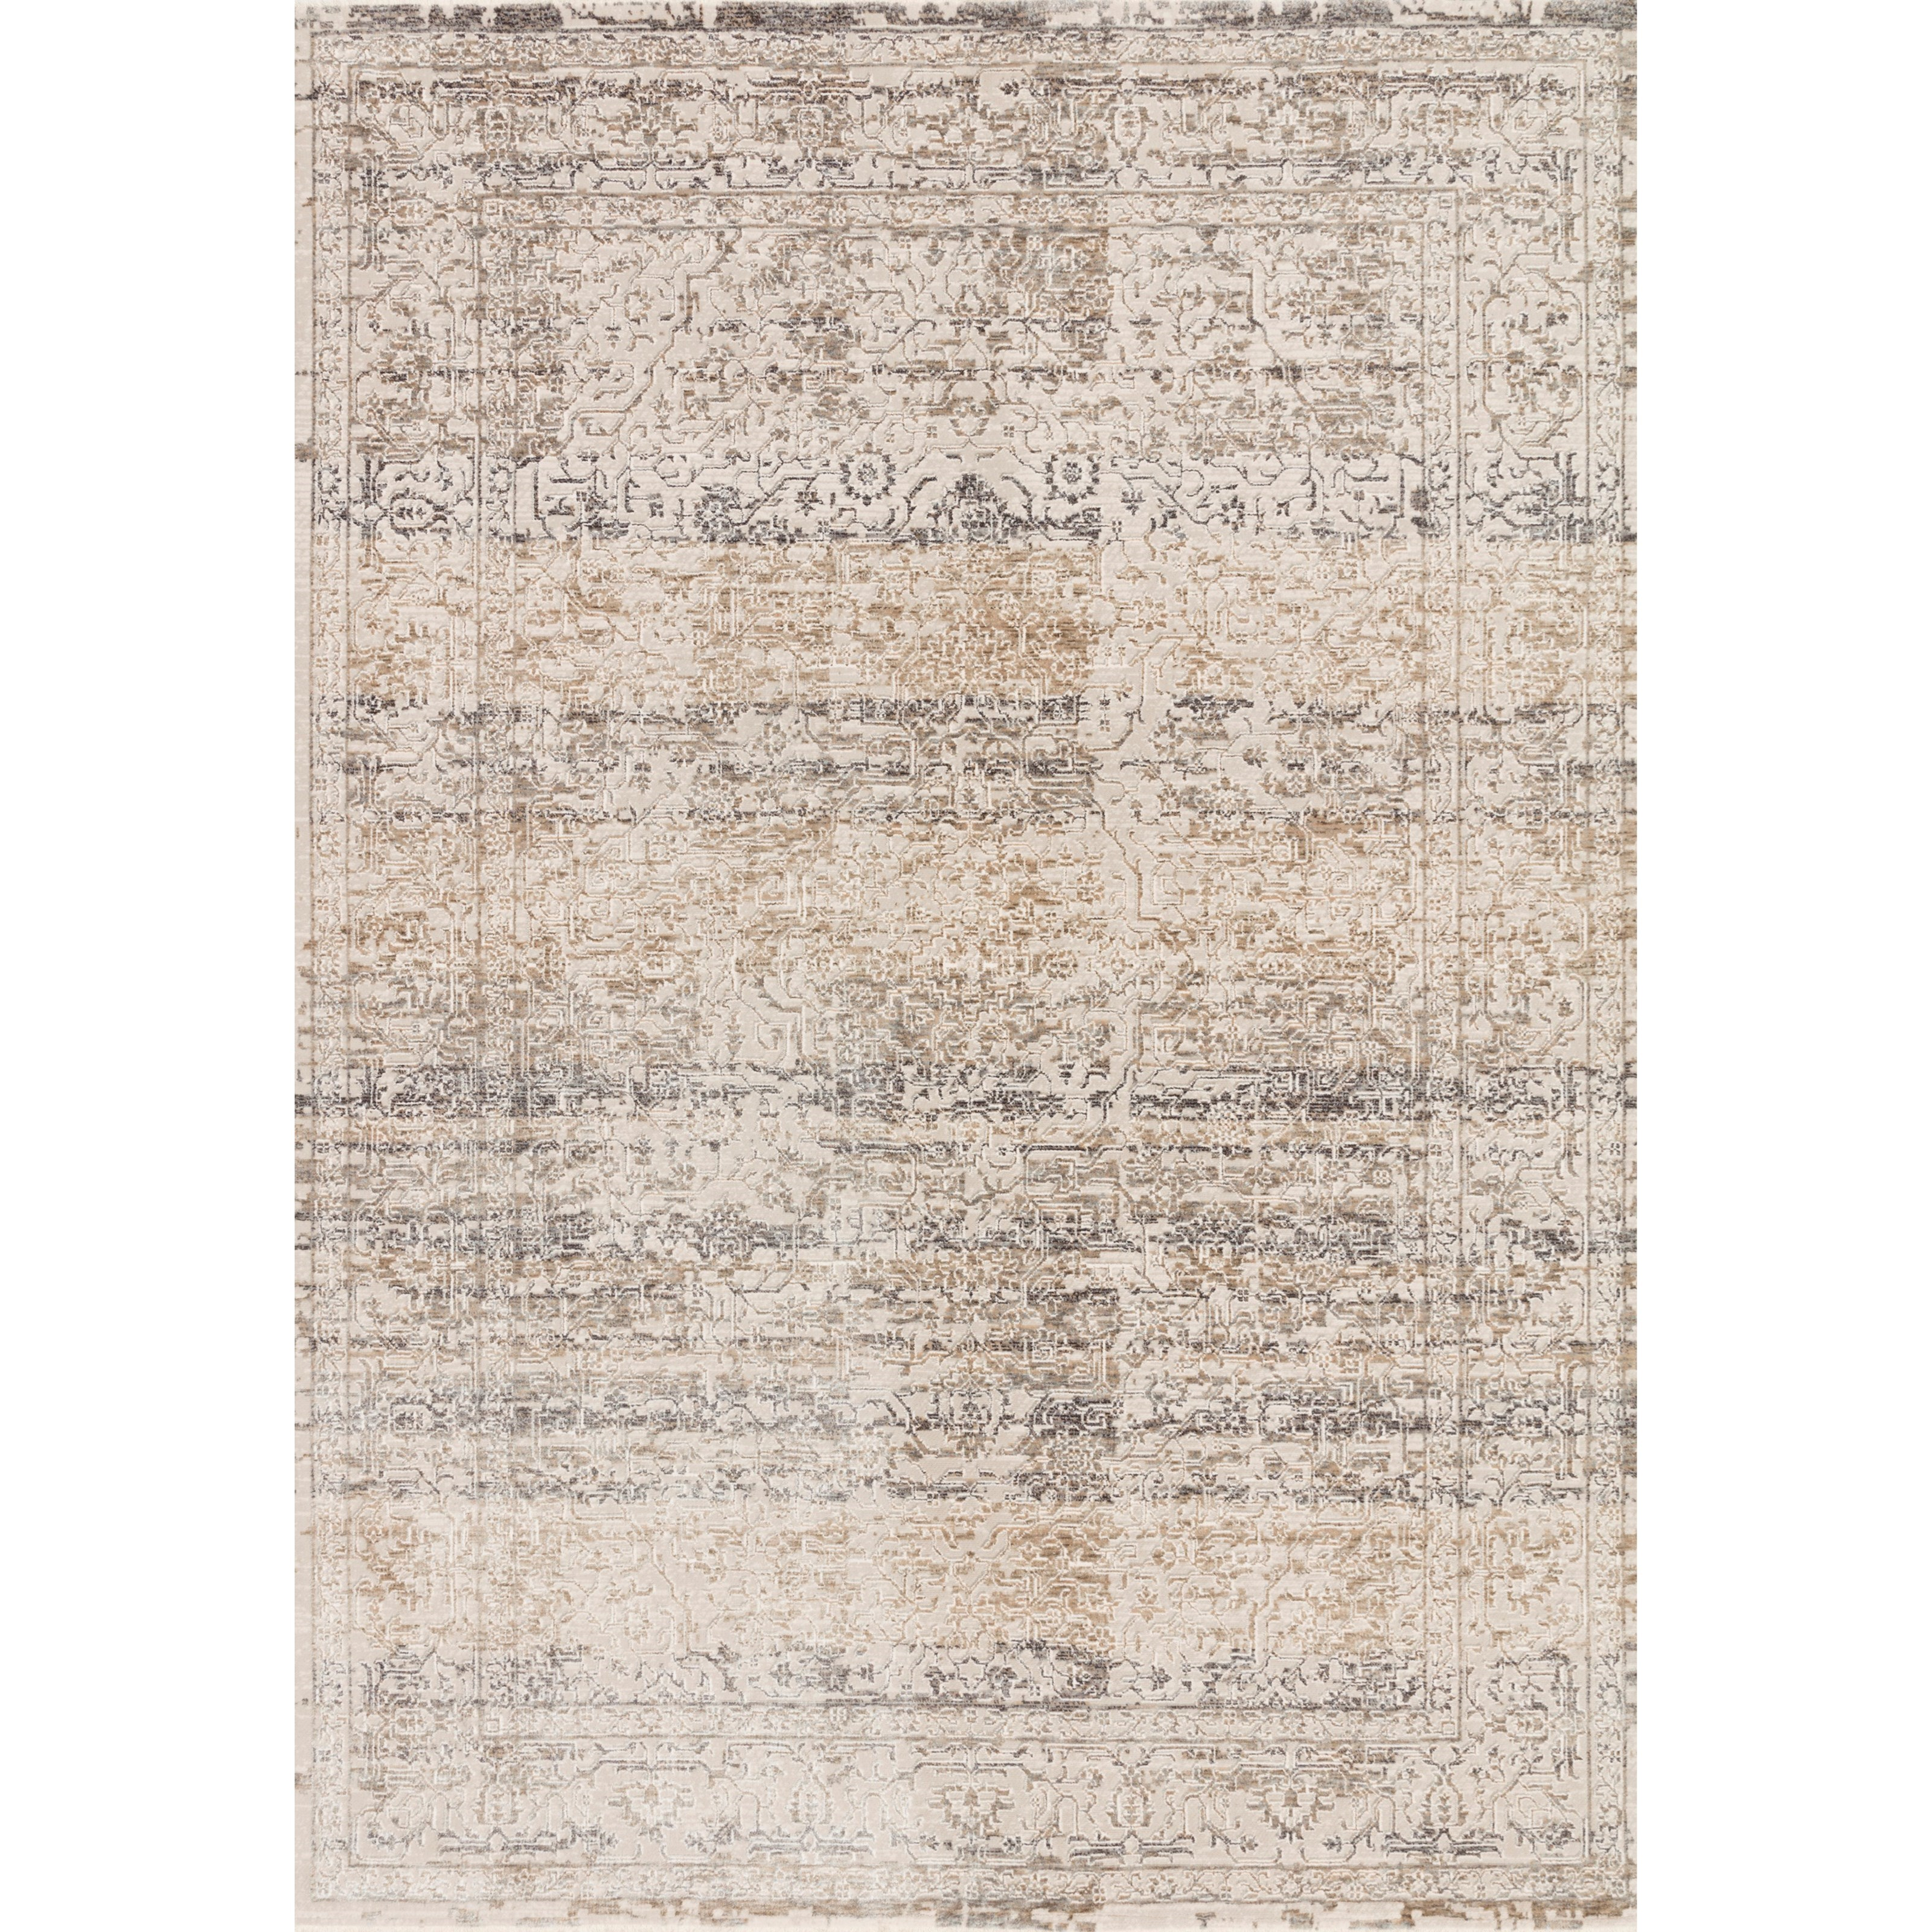 """Homage 3'9"""" x 5'9"""" Beige / Grey Rug by Loloi Rugs at Virginia Furniture Market"""